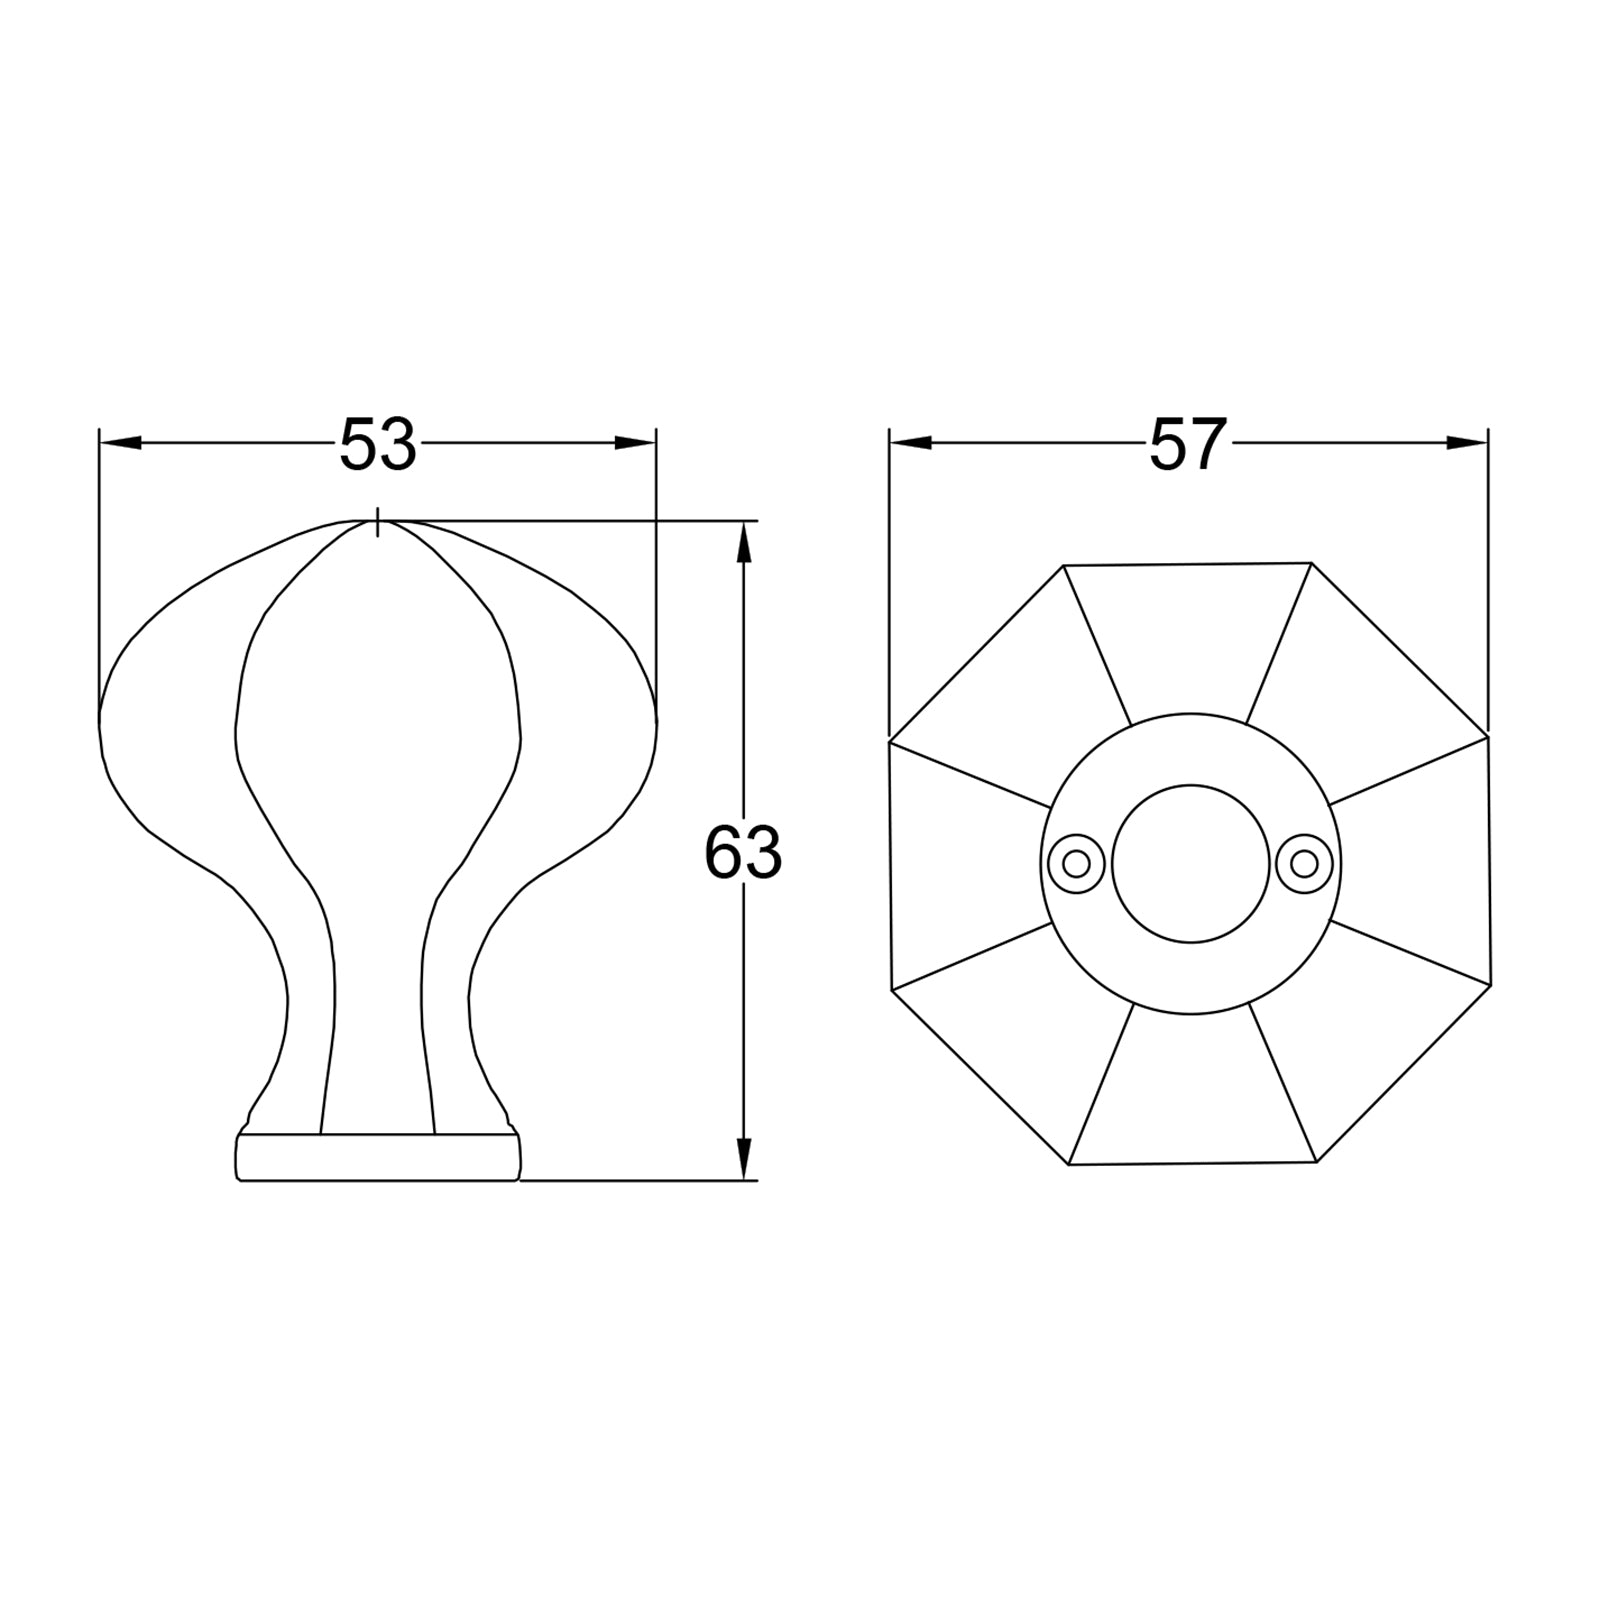 dimension drawing of octagonal door knob SHOW